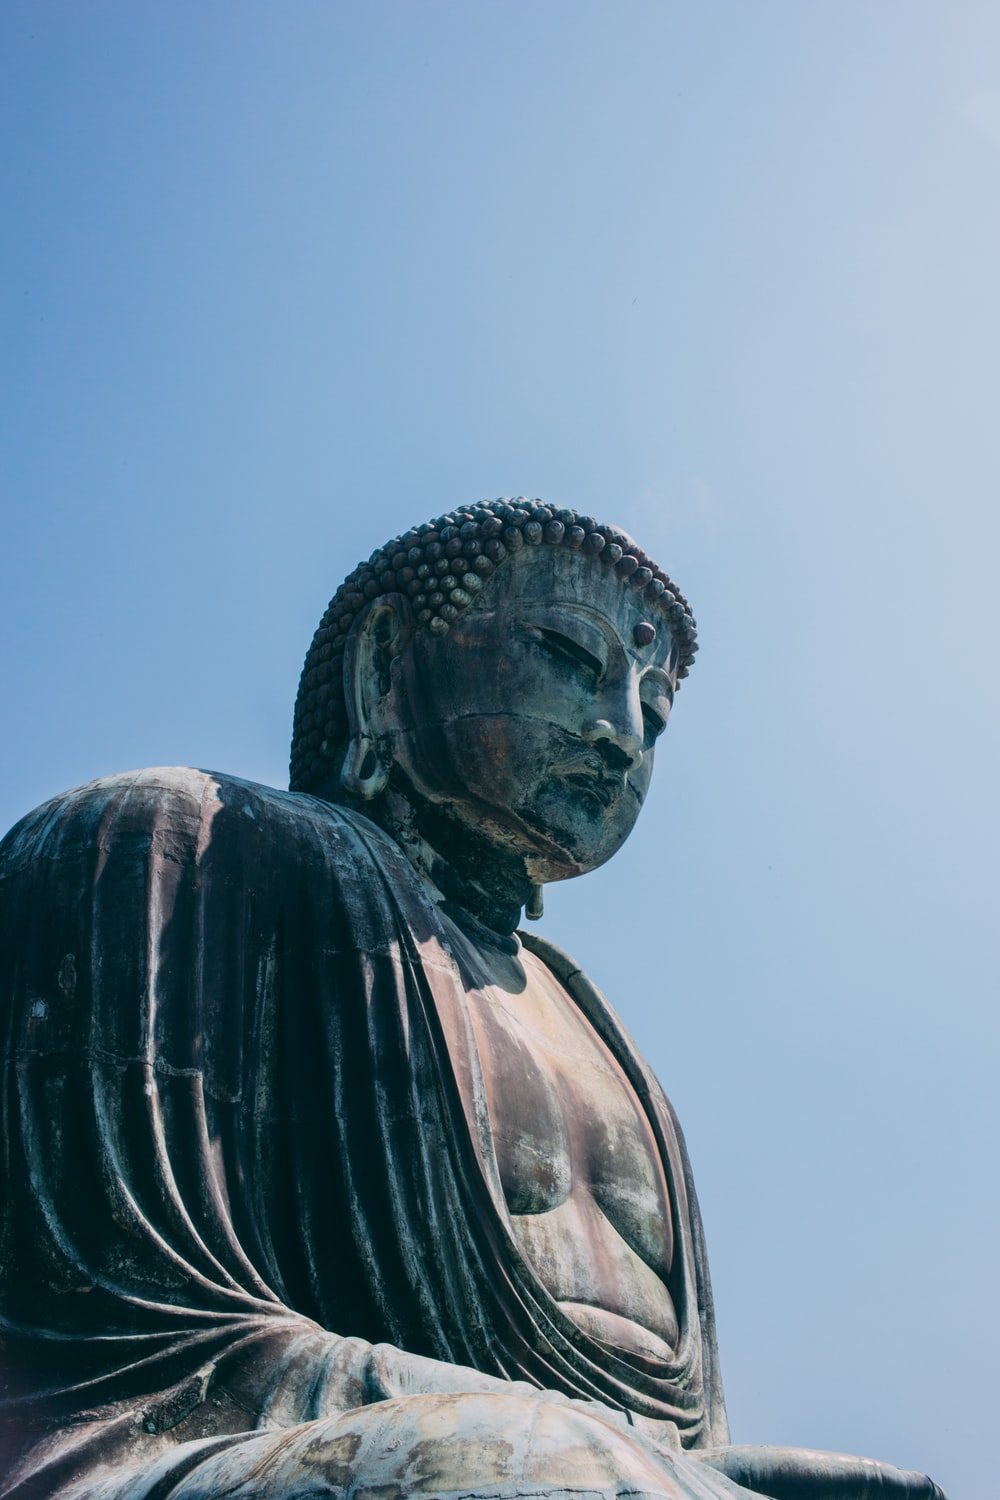 selective focus photography of Buddha statue during daytime